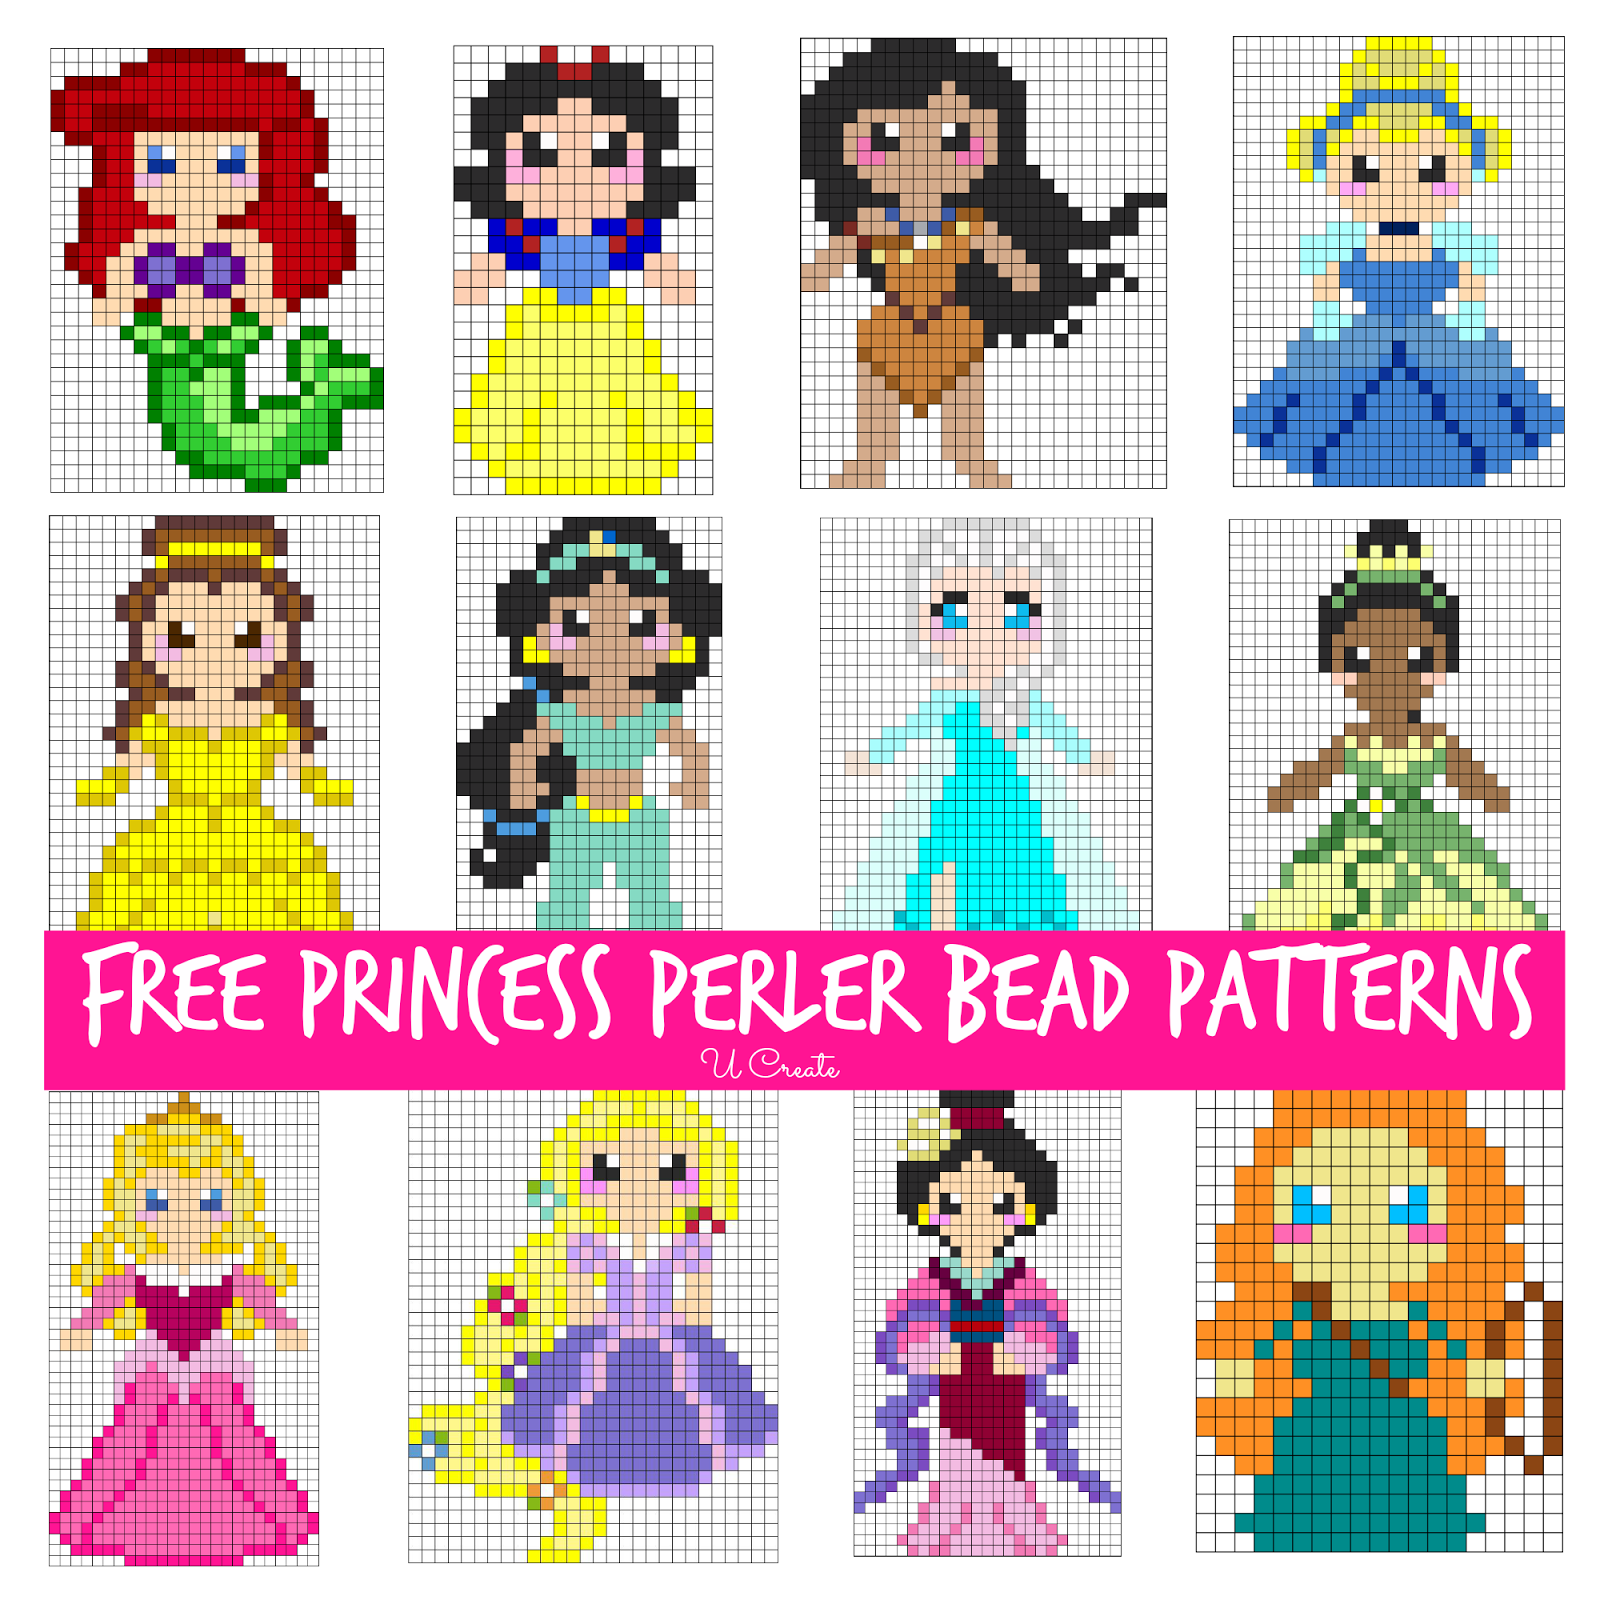 Free Disney Princess Perler Bead Patterns for Kids!